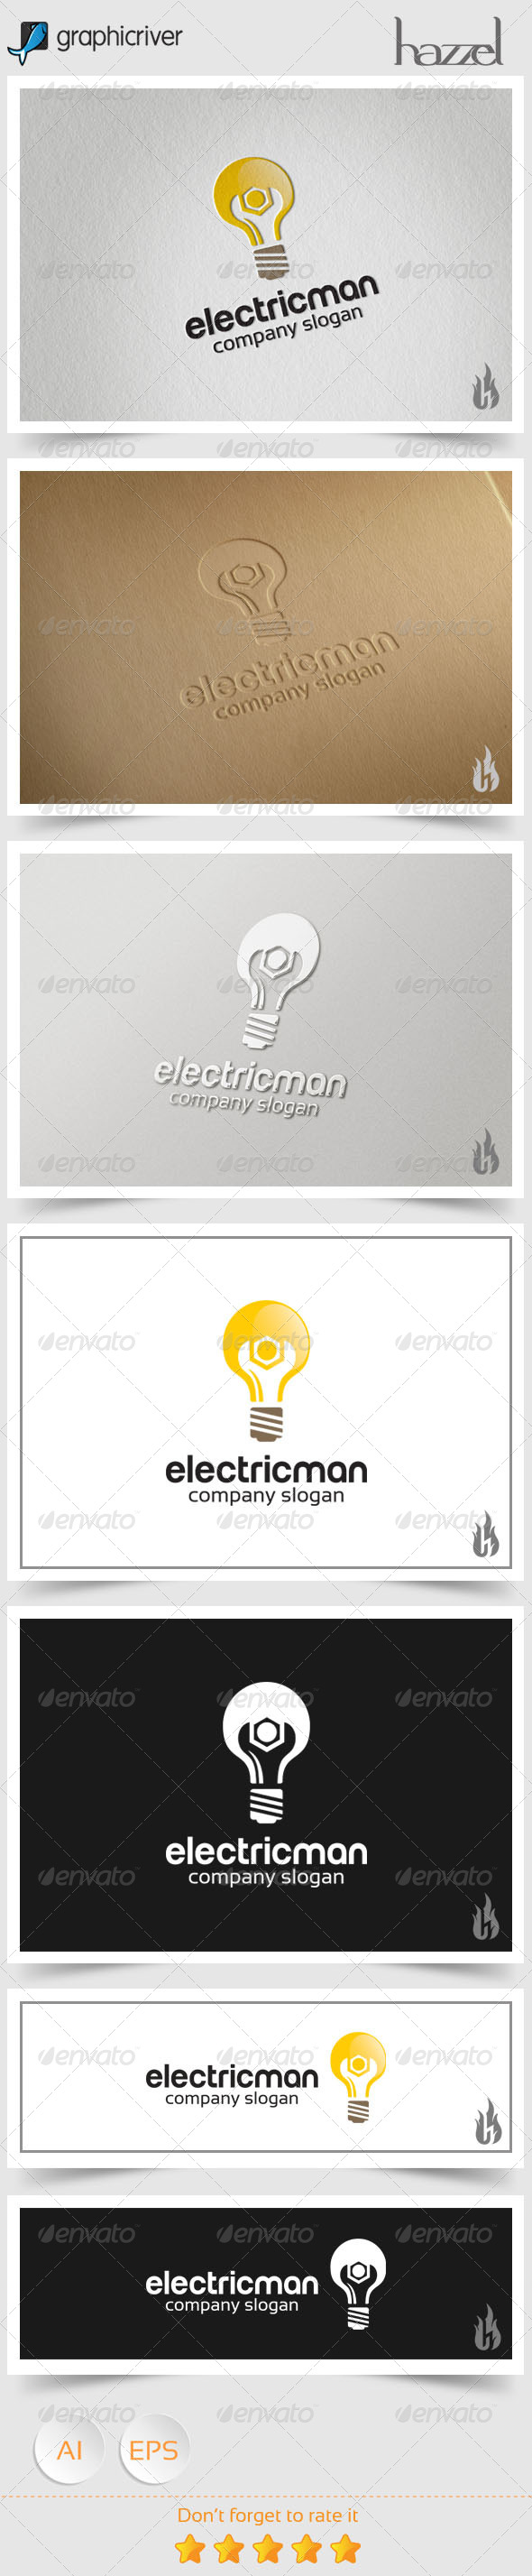 GraphicRiver Electricman Logo 8588970